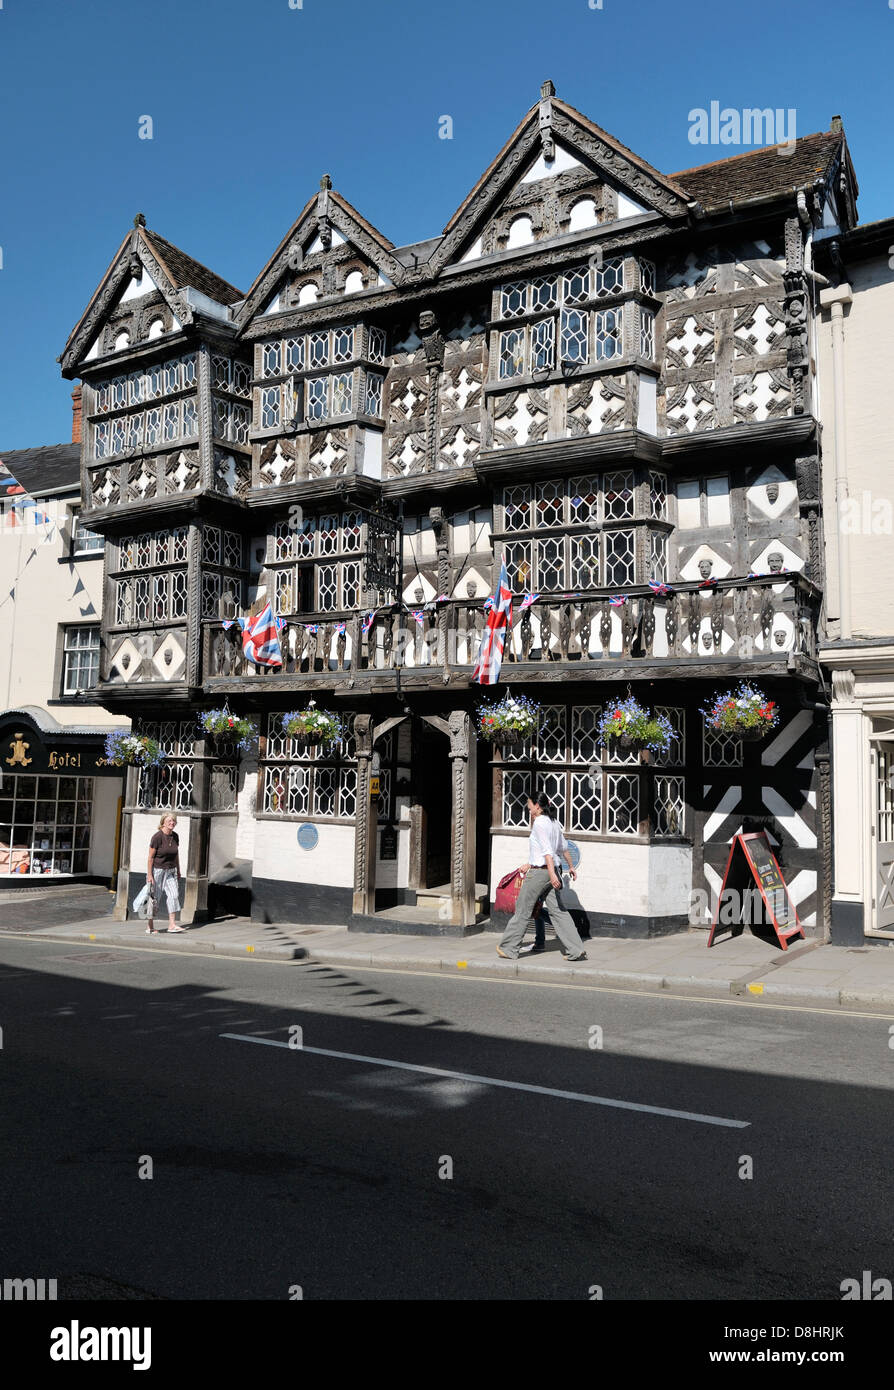 The famous Feathers Hotel in Ludlow, Shropshire, built as private home in 1619. Tudor style half-timbered building - Stock Image